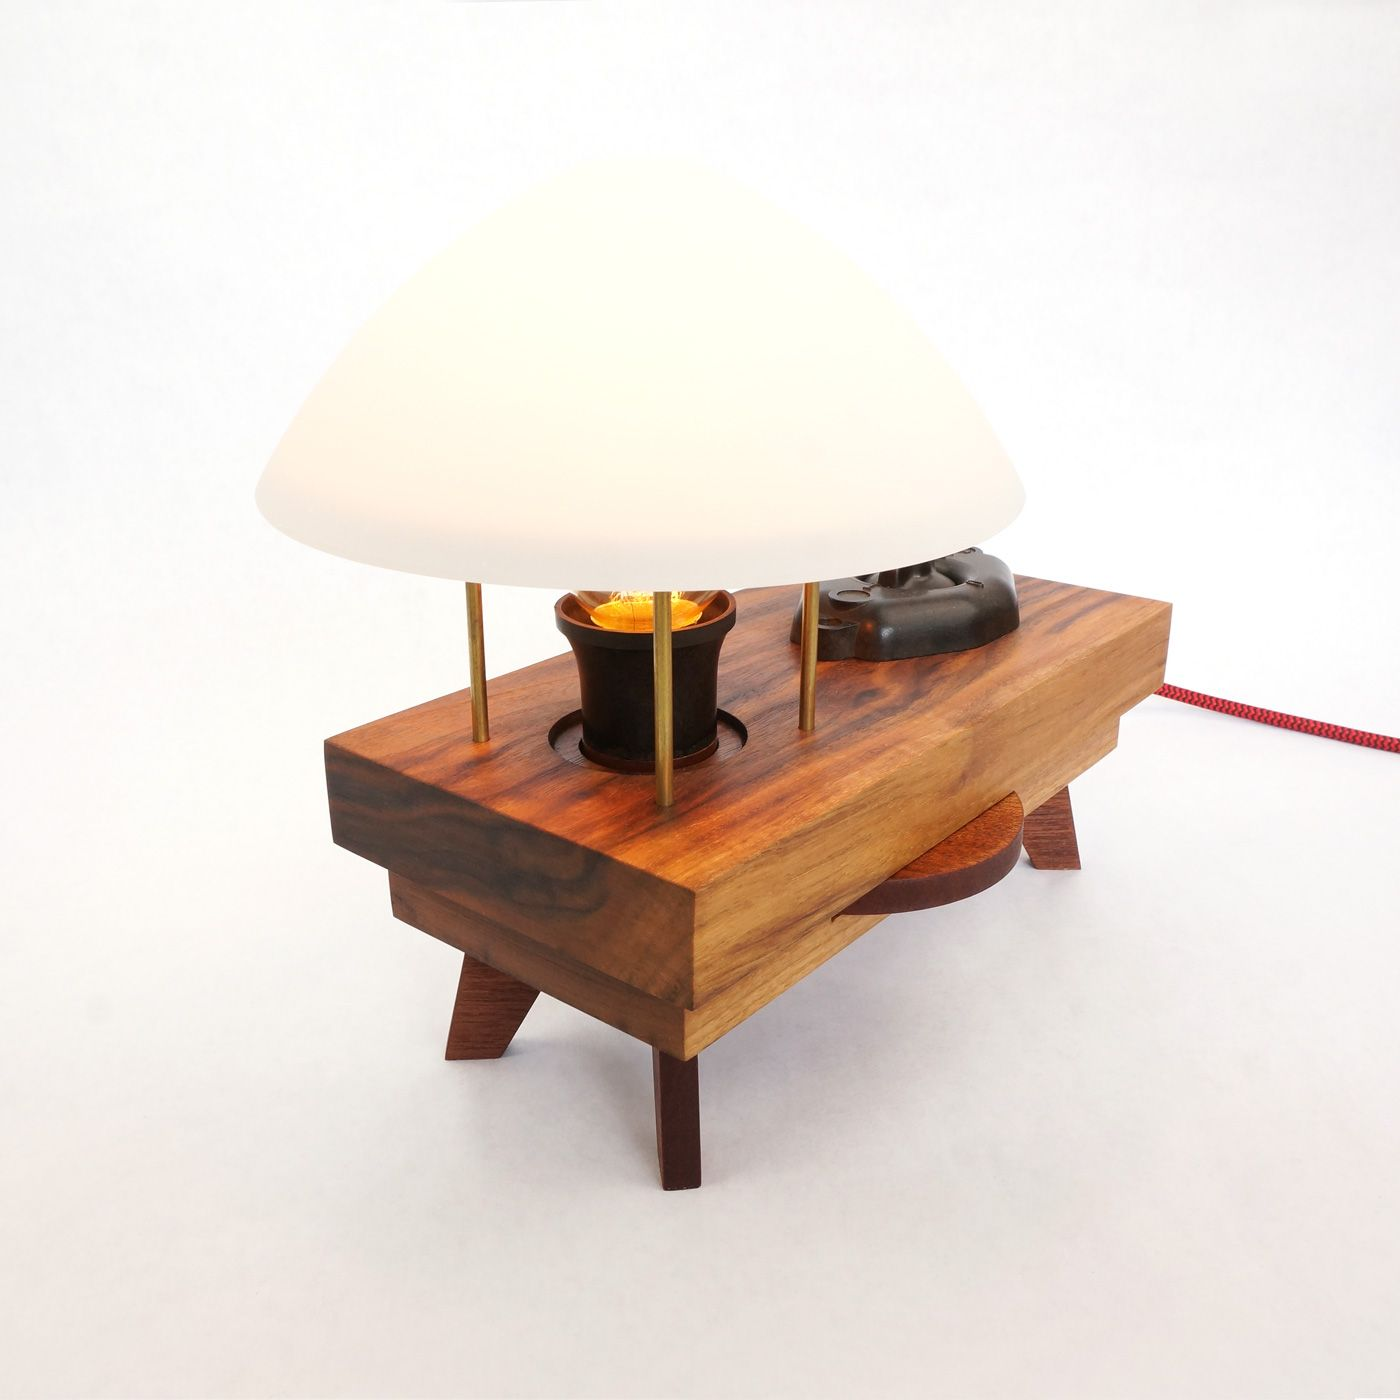 Wooden Table Lamp Shade With Original Bakelite Parts Vintage Look Zzzdesign Wooden Table Lamps Table Lamp Shades Table Lamp